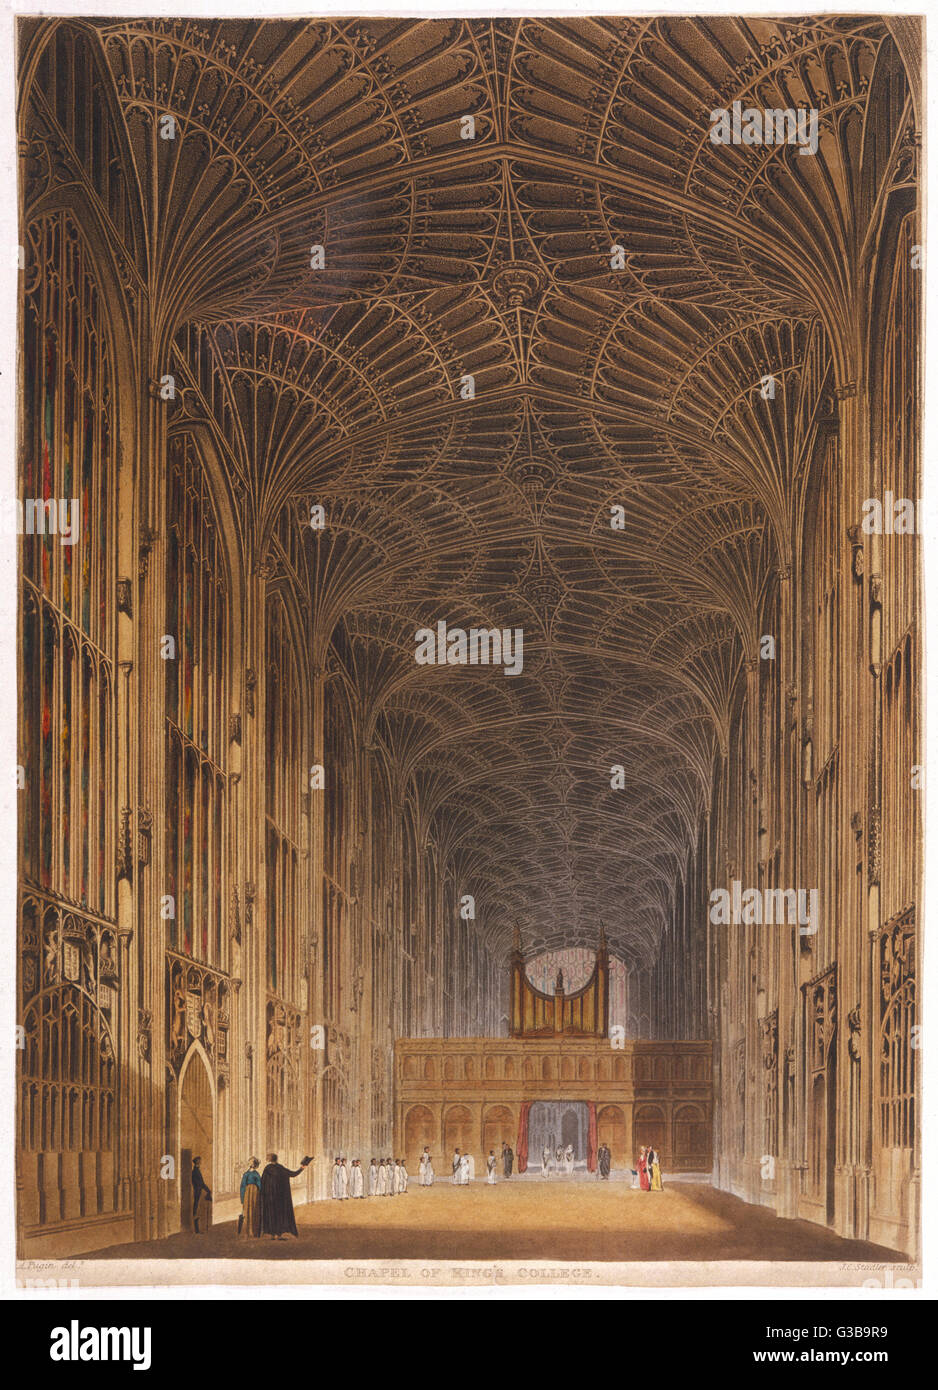 King's College Chapel,  showing details of the ornate ceiling       Date: circa 1820 Stock Photo